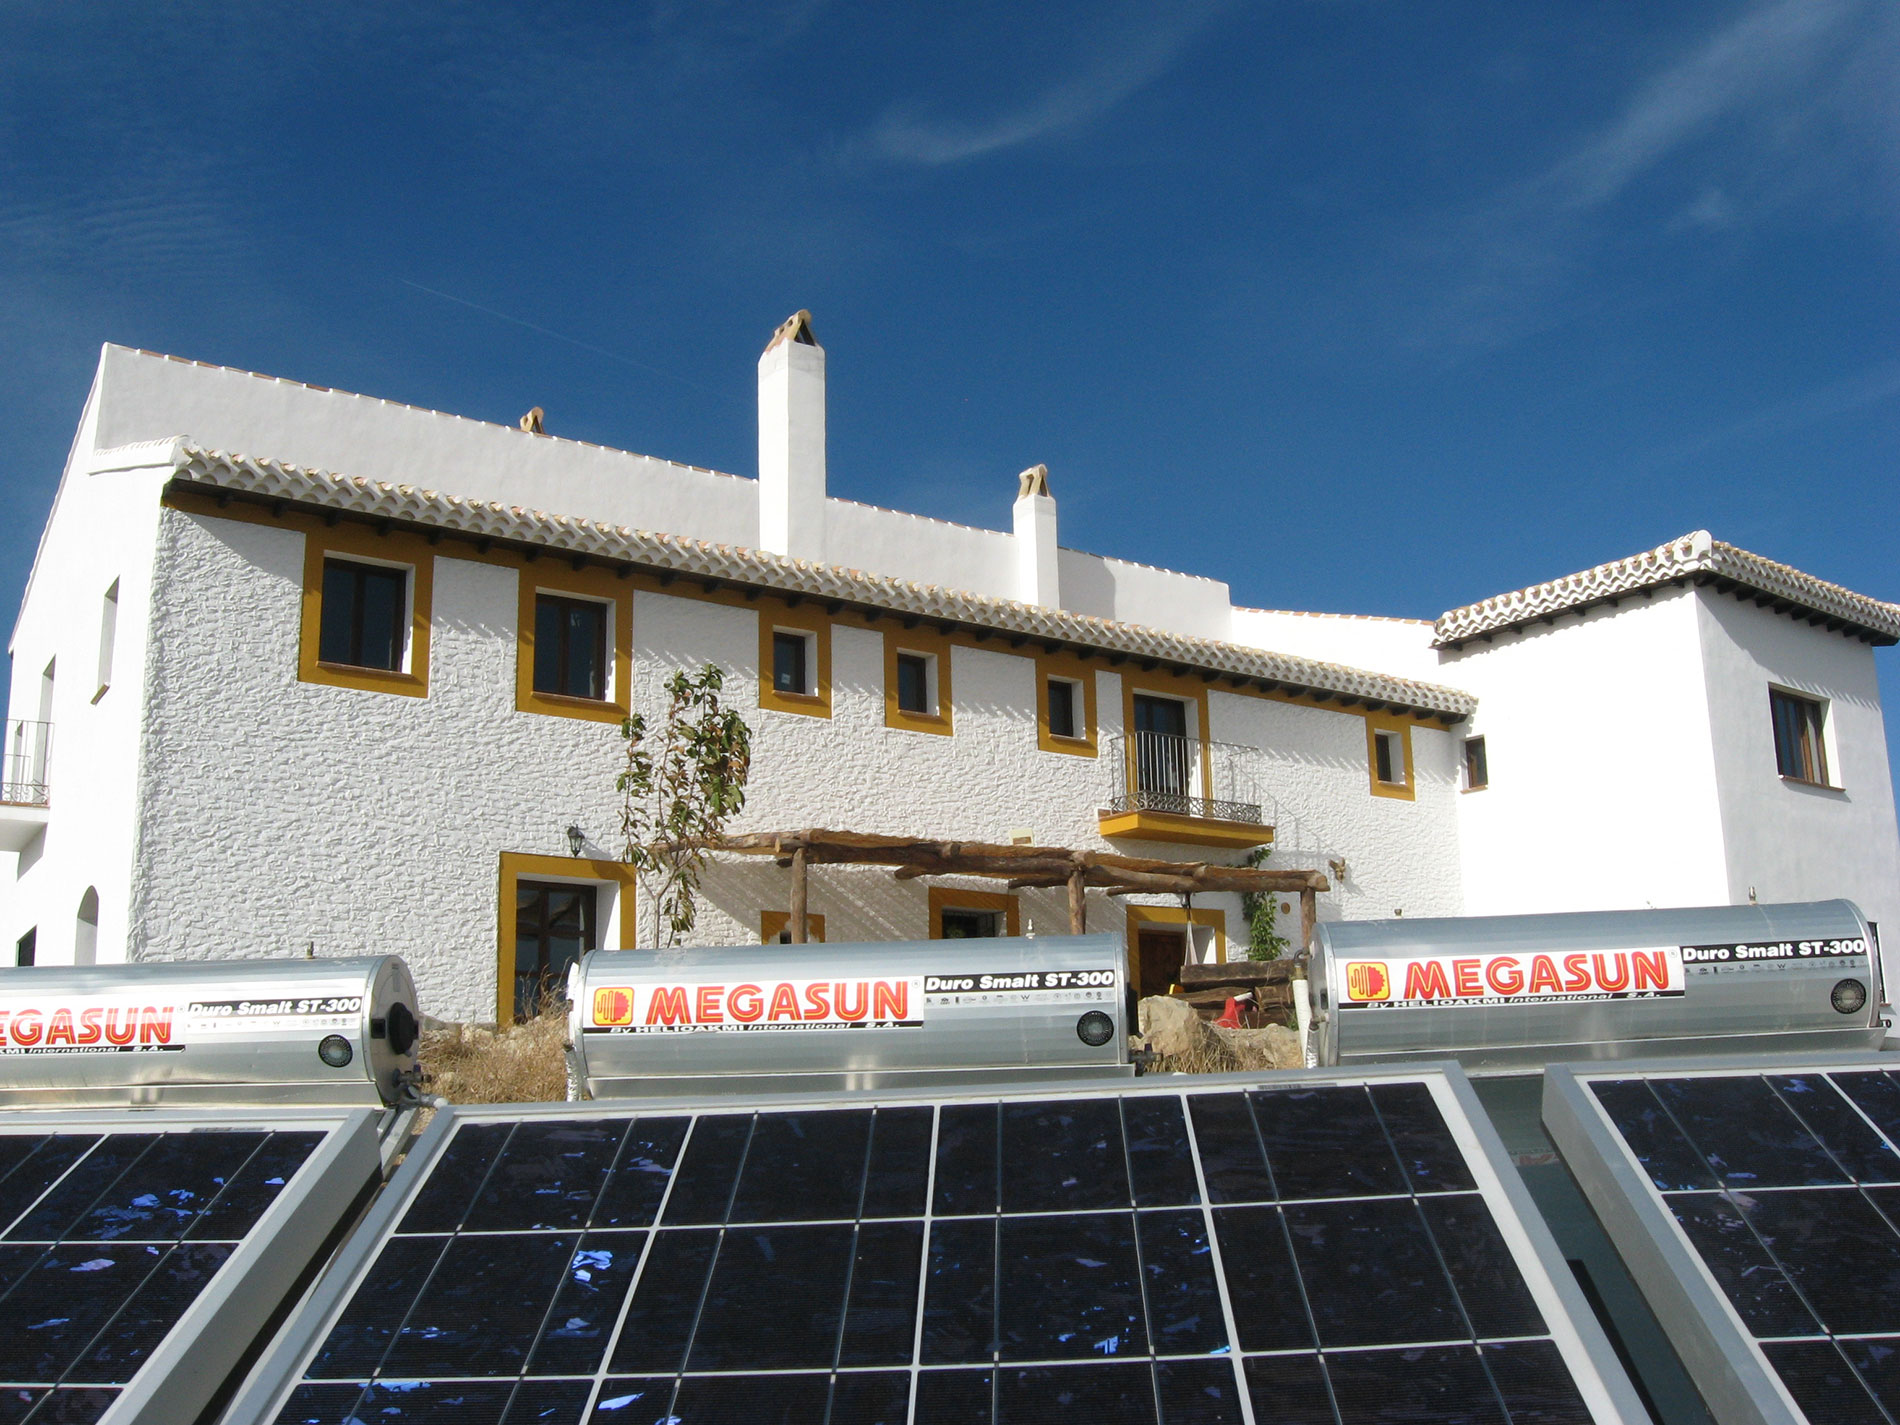 ecological hotel, ecological hotel spain, eco-hotel spain, eco-hotel andalucia, eco-tourism spain, eco tourism spain, off grid hotel spain, off-grid hotel spain, off grid hotel andalusia, off-grid hotel andalucia, rural tourism spain, rural hotel spain, rural hotel andalusia, rural hotel andalucia,